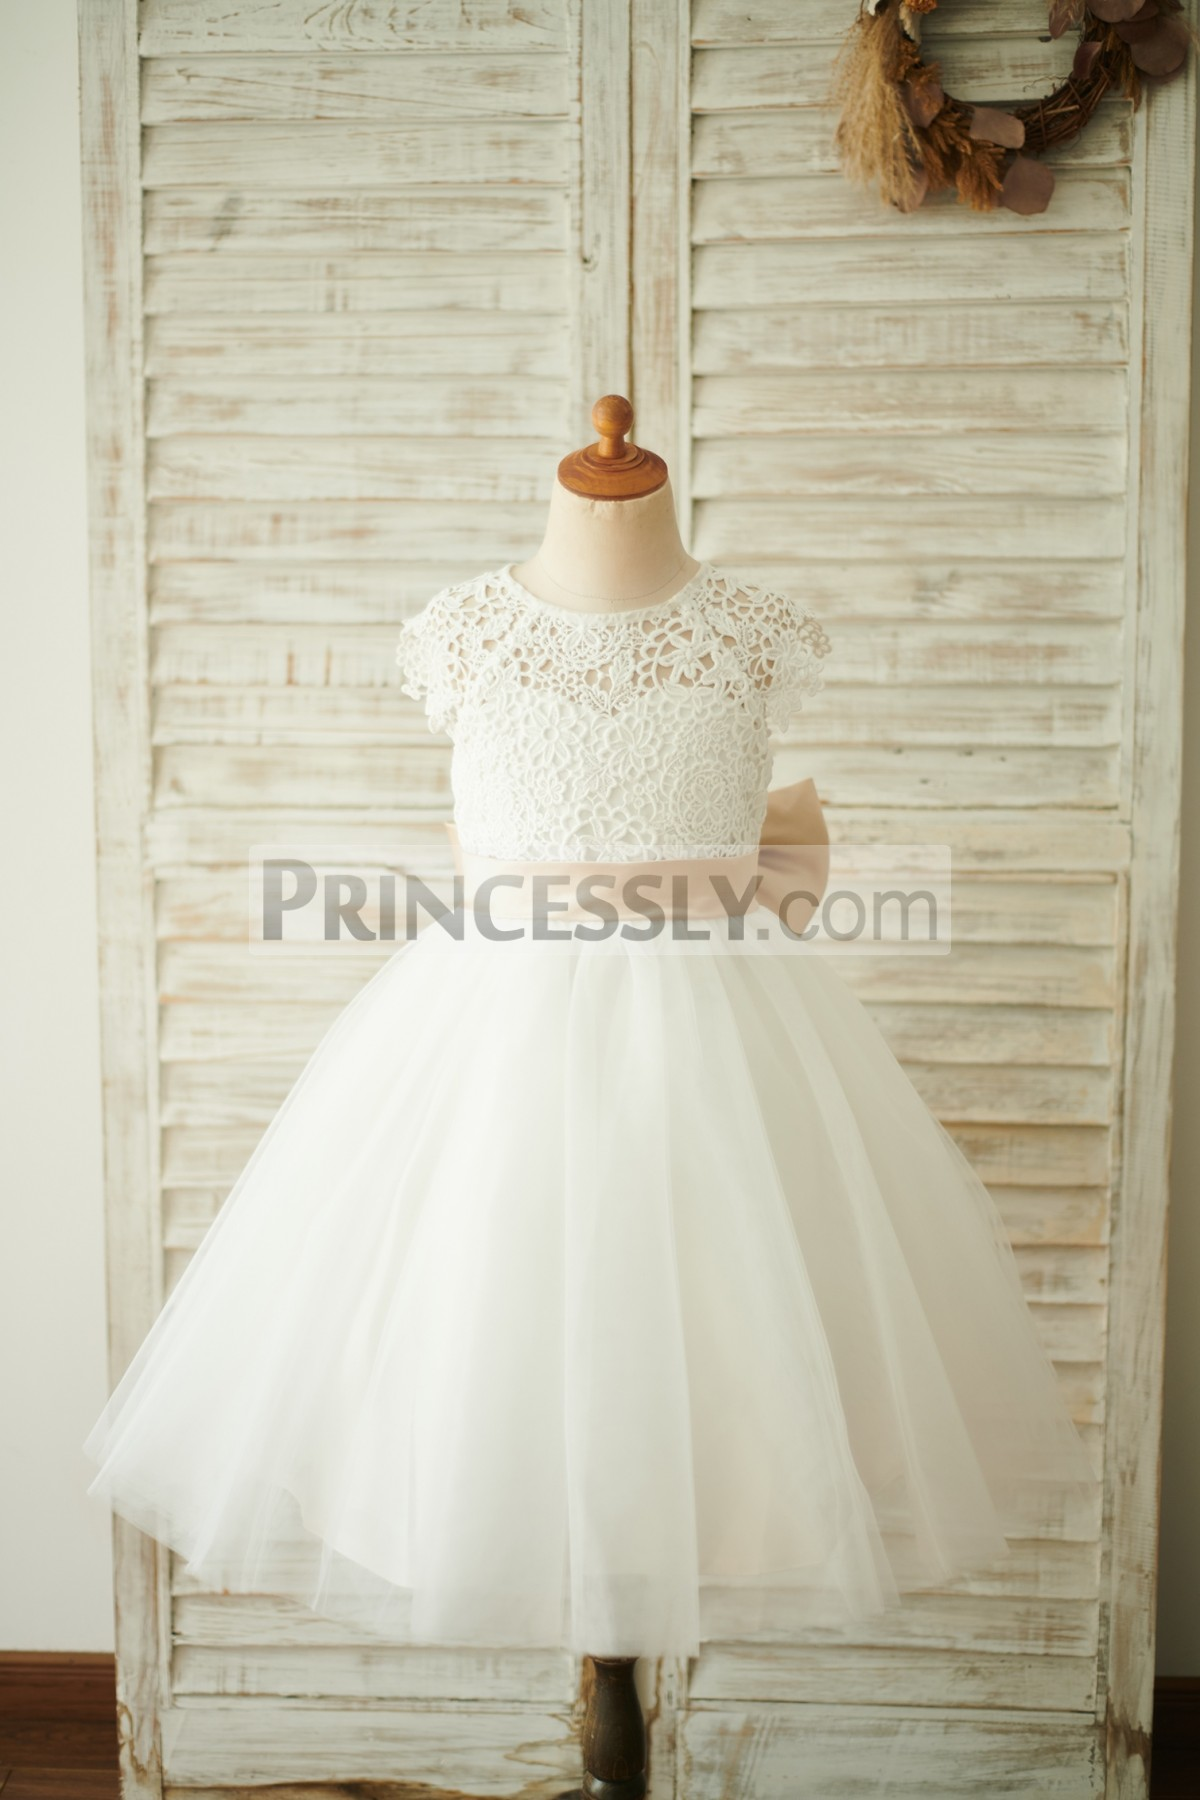 Princessly.com-K1003857-Ivory Lace Tulle Cap Sleeves Wedding Flower Girl Dress with Bow-31